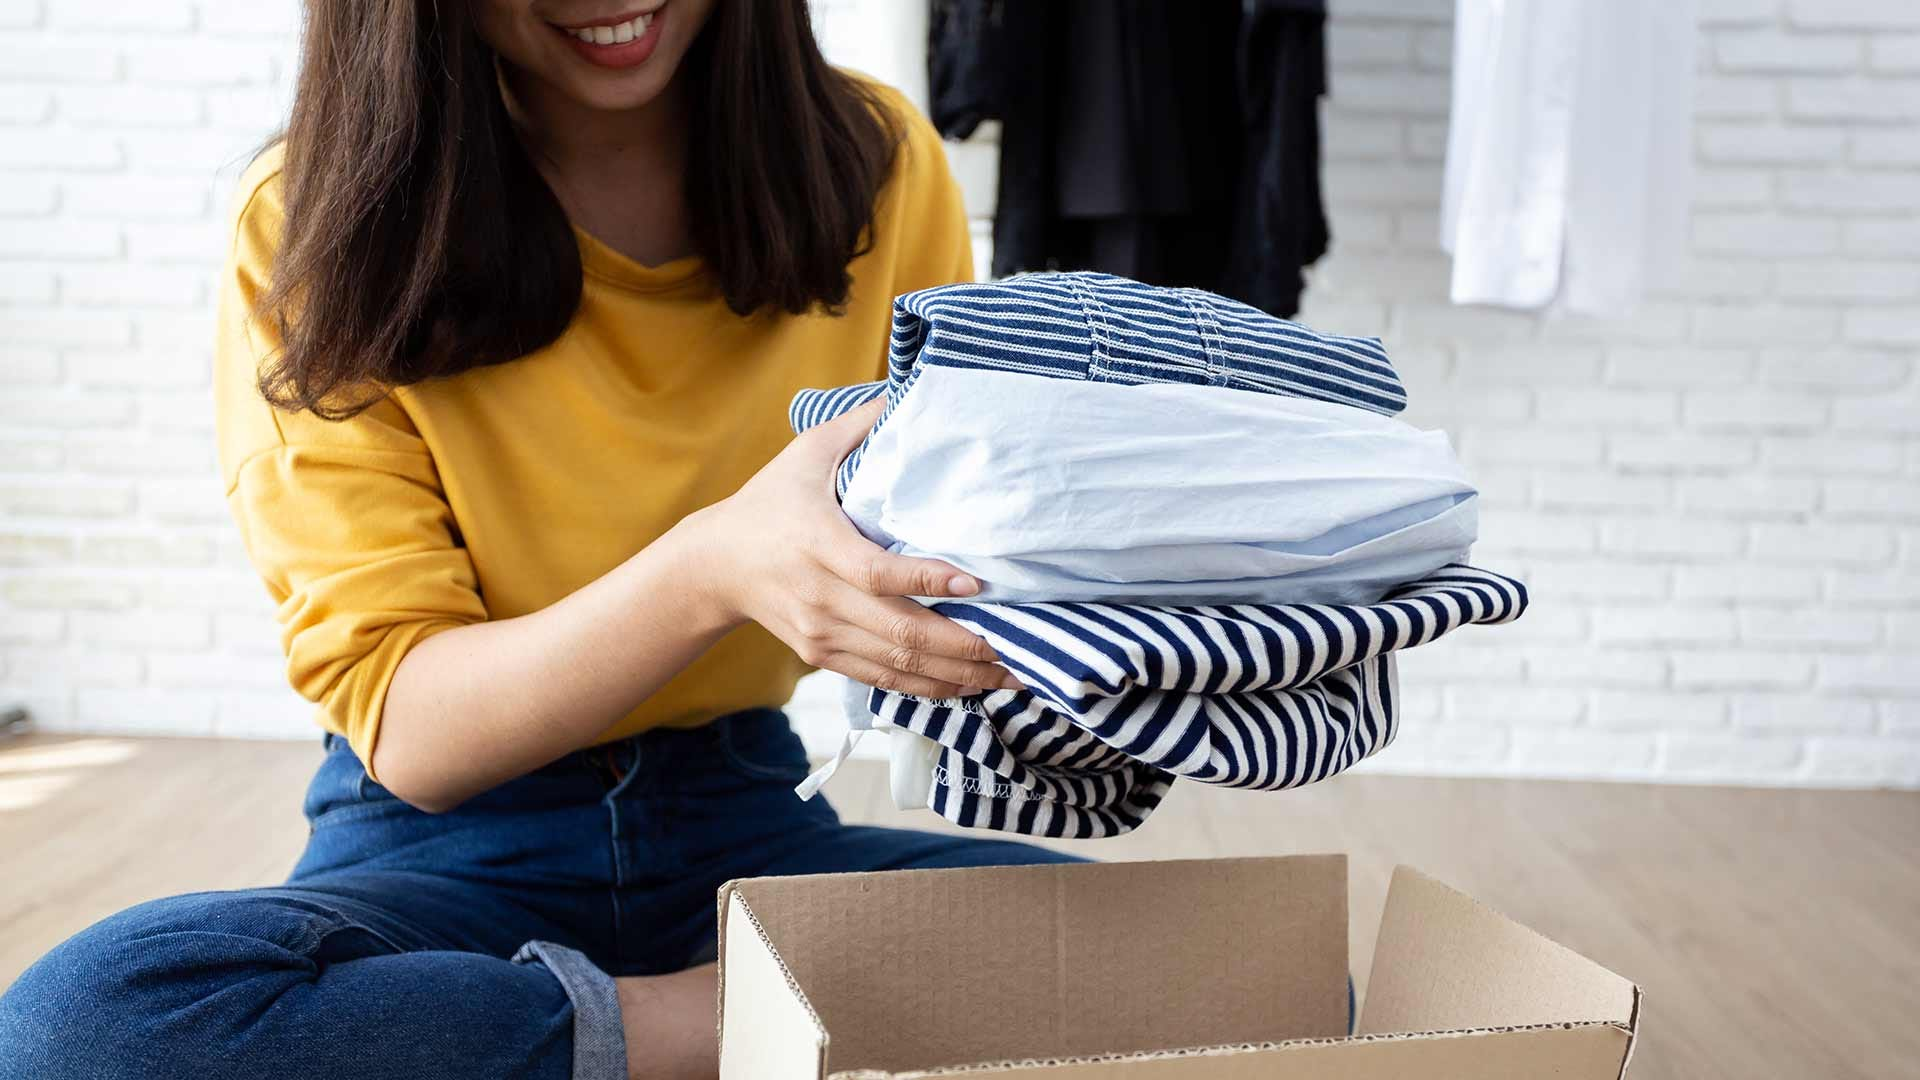 A woman cleaning out her closet and packing up clothing to donate.